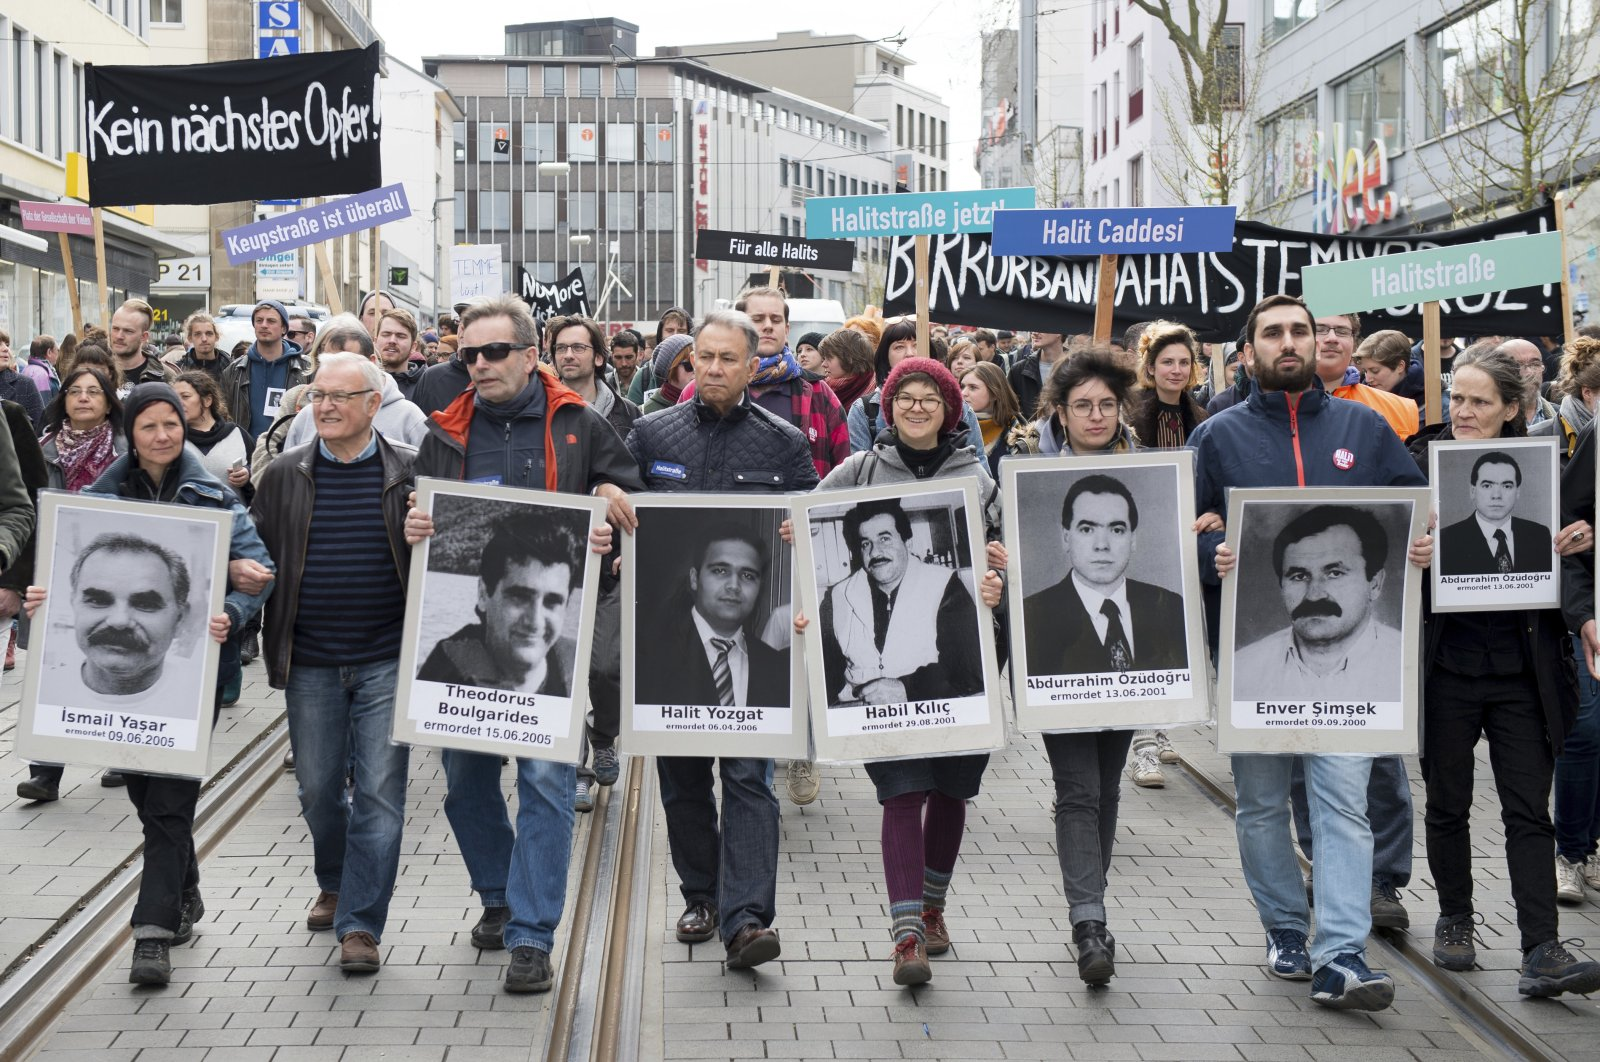 Demonstrators walk holding posters of people killed by NSU, in Kassel, Germany, Thursday, April 6, 2017. (AP Photo)